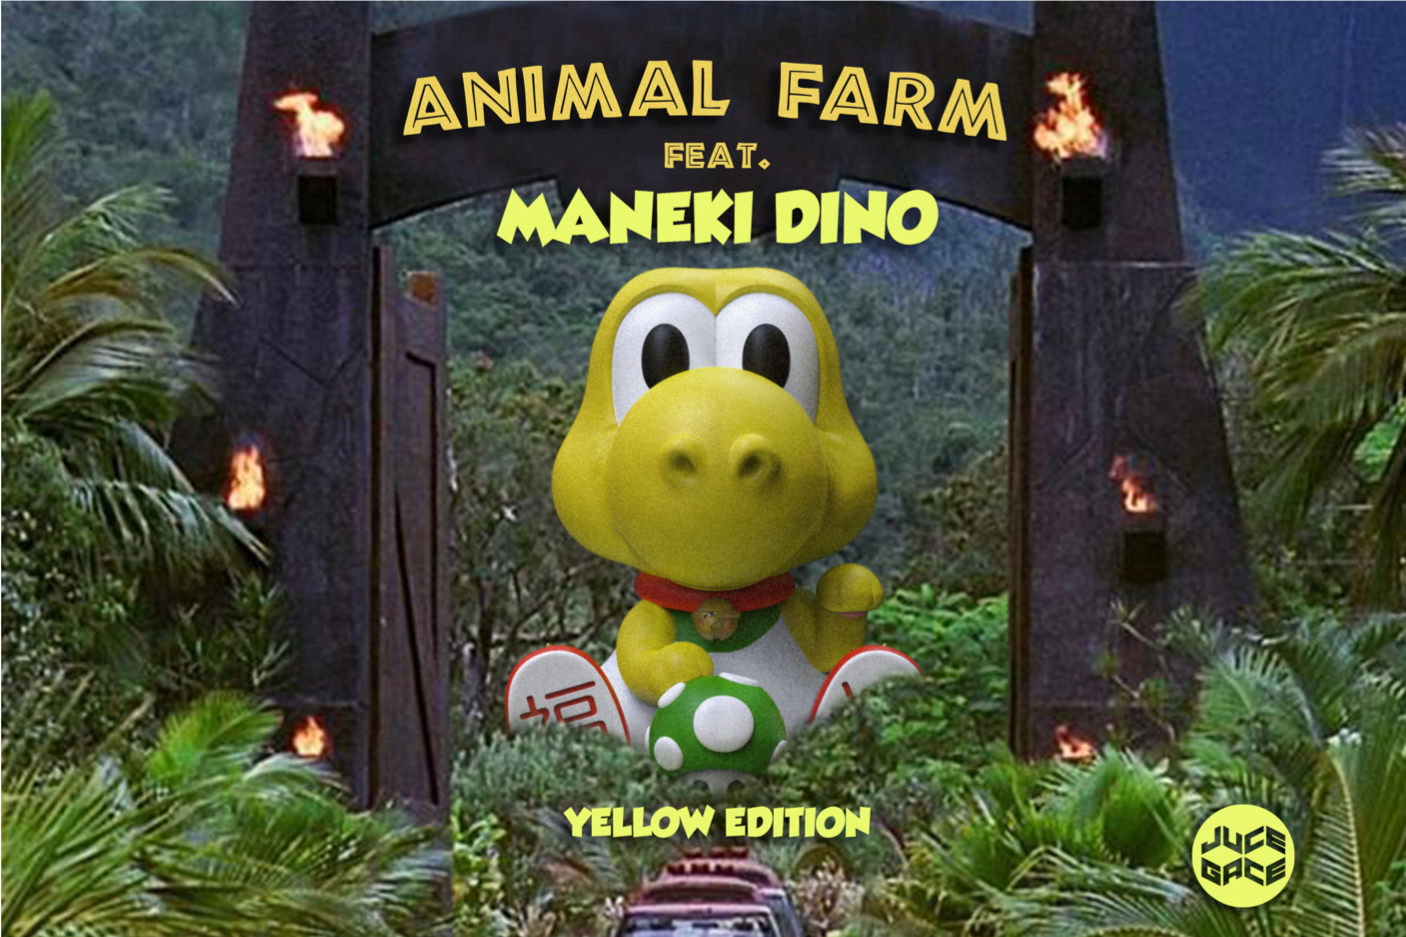 Gather at Animal Farm with Maneki-Dino!